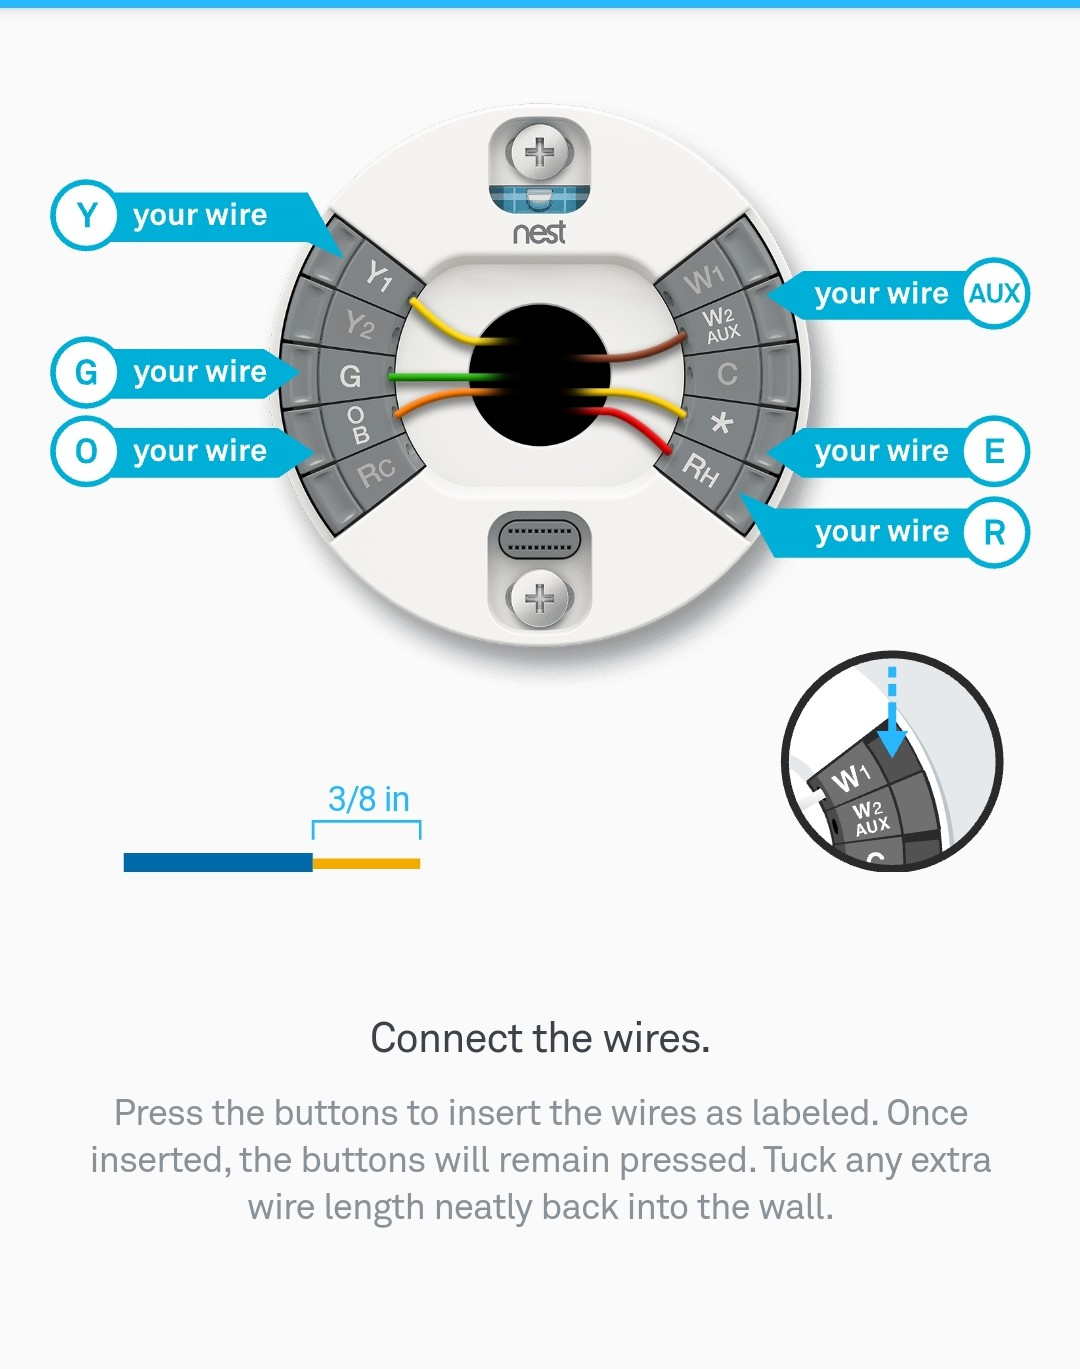 Google Nest Thermostat E Wiring Diagram from storage.googleapis.com